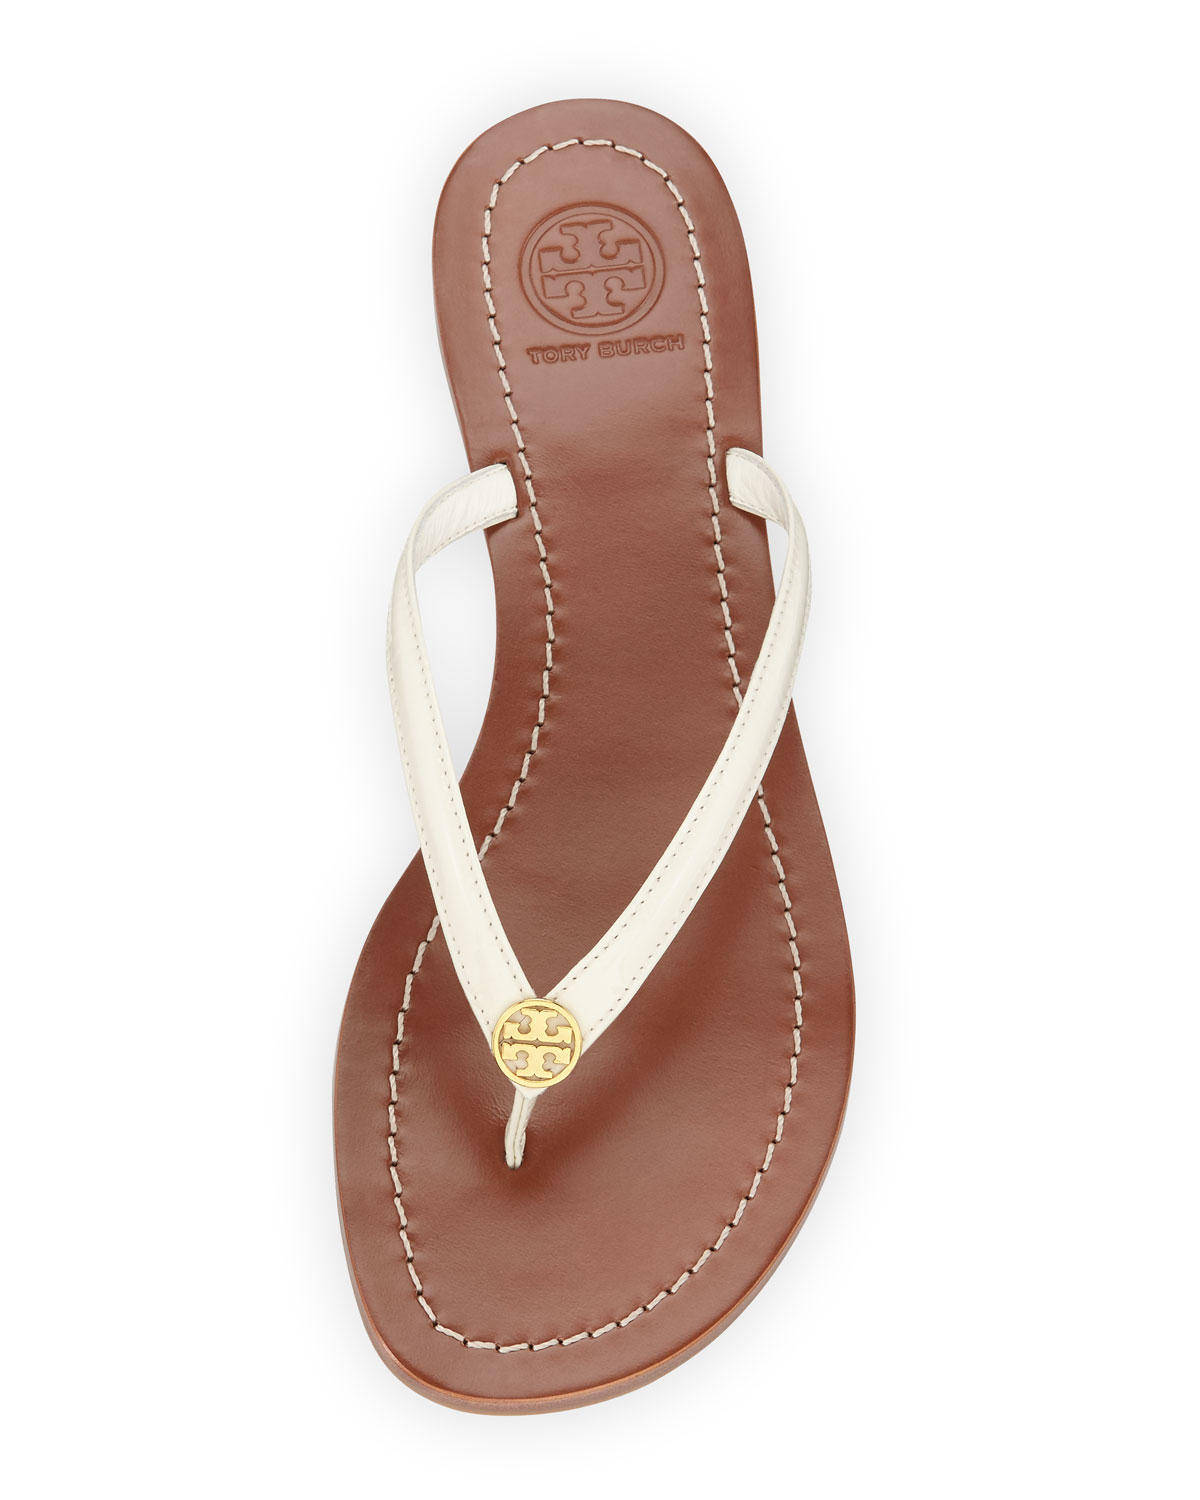 b0fc54c457b Lyst - Tory Burch Terra Patent Thong Sandals in White